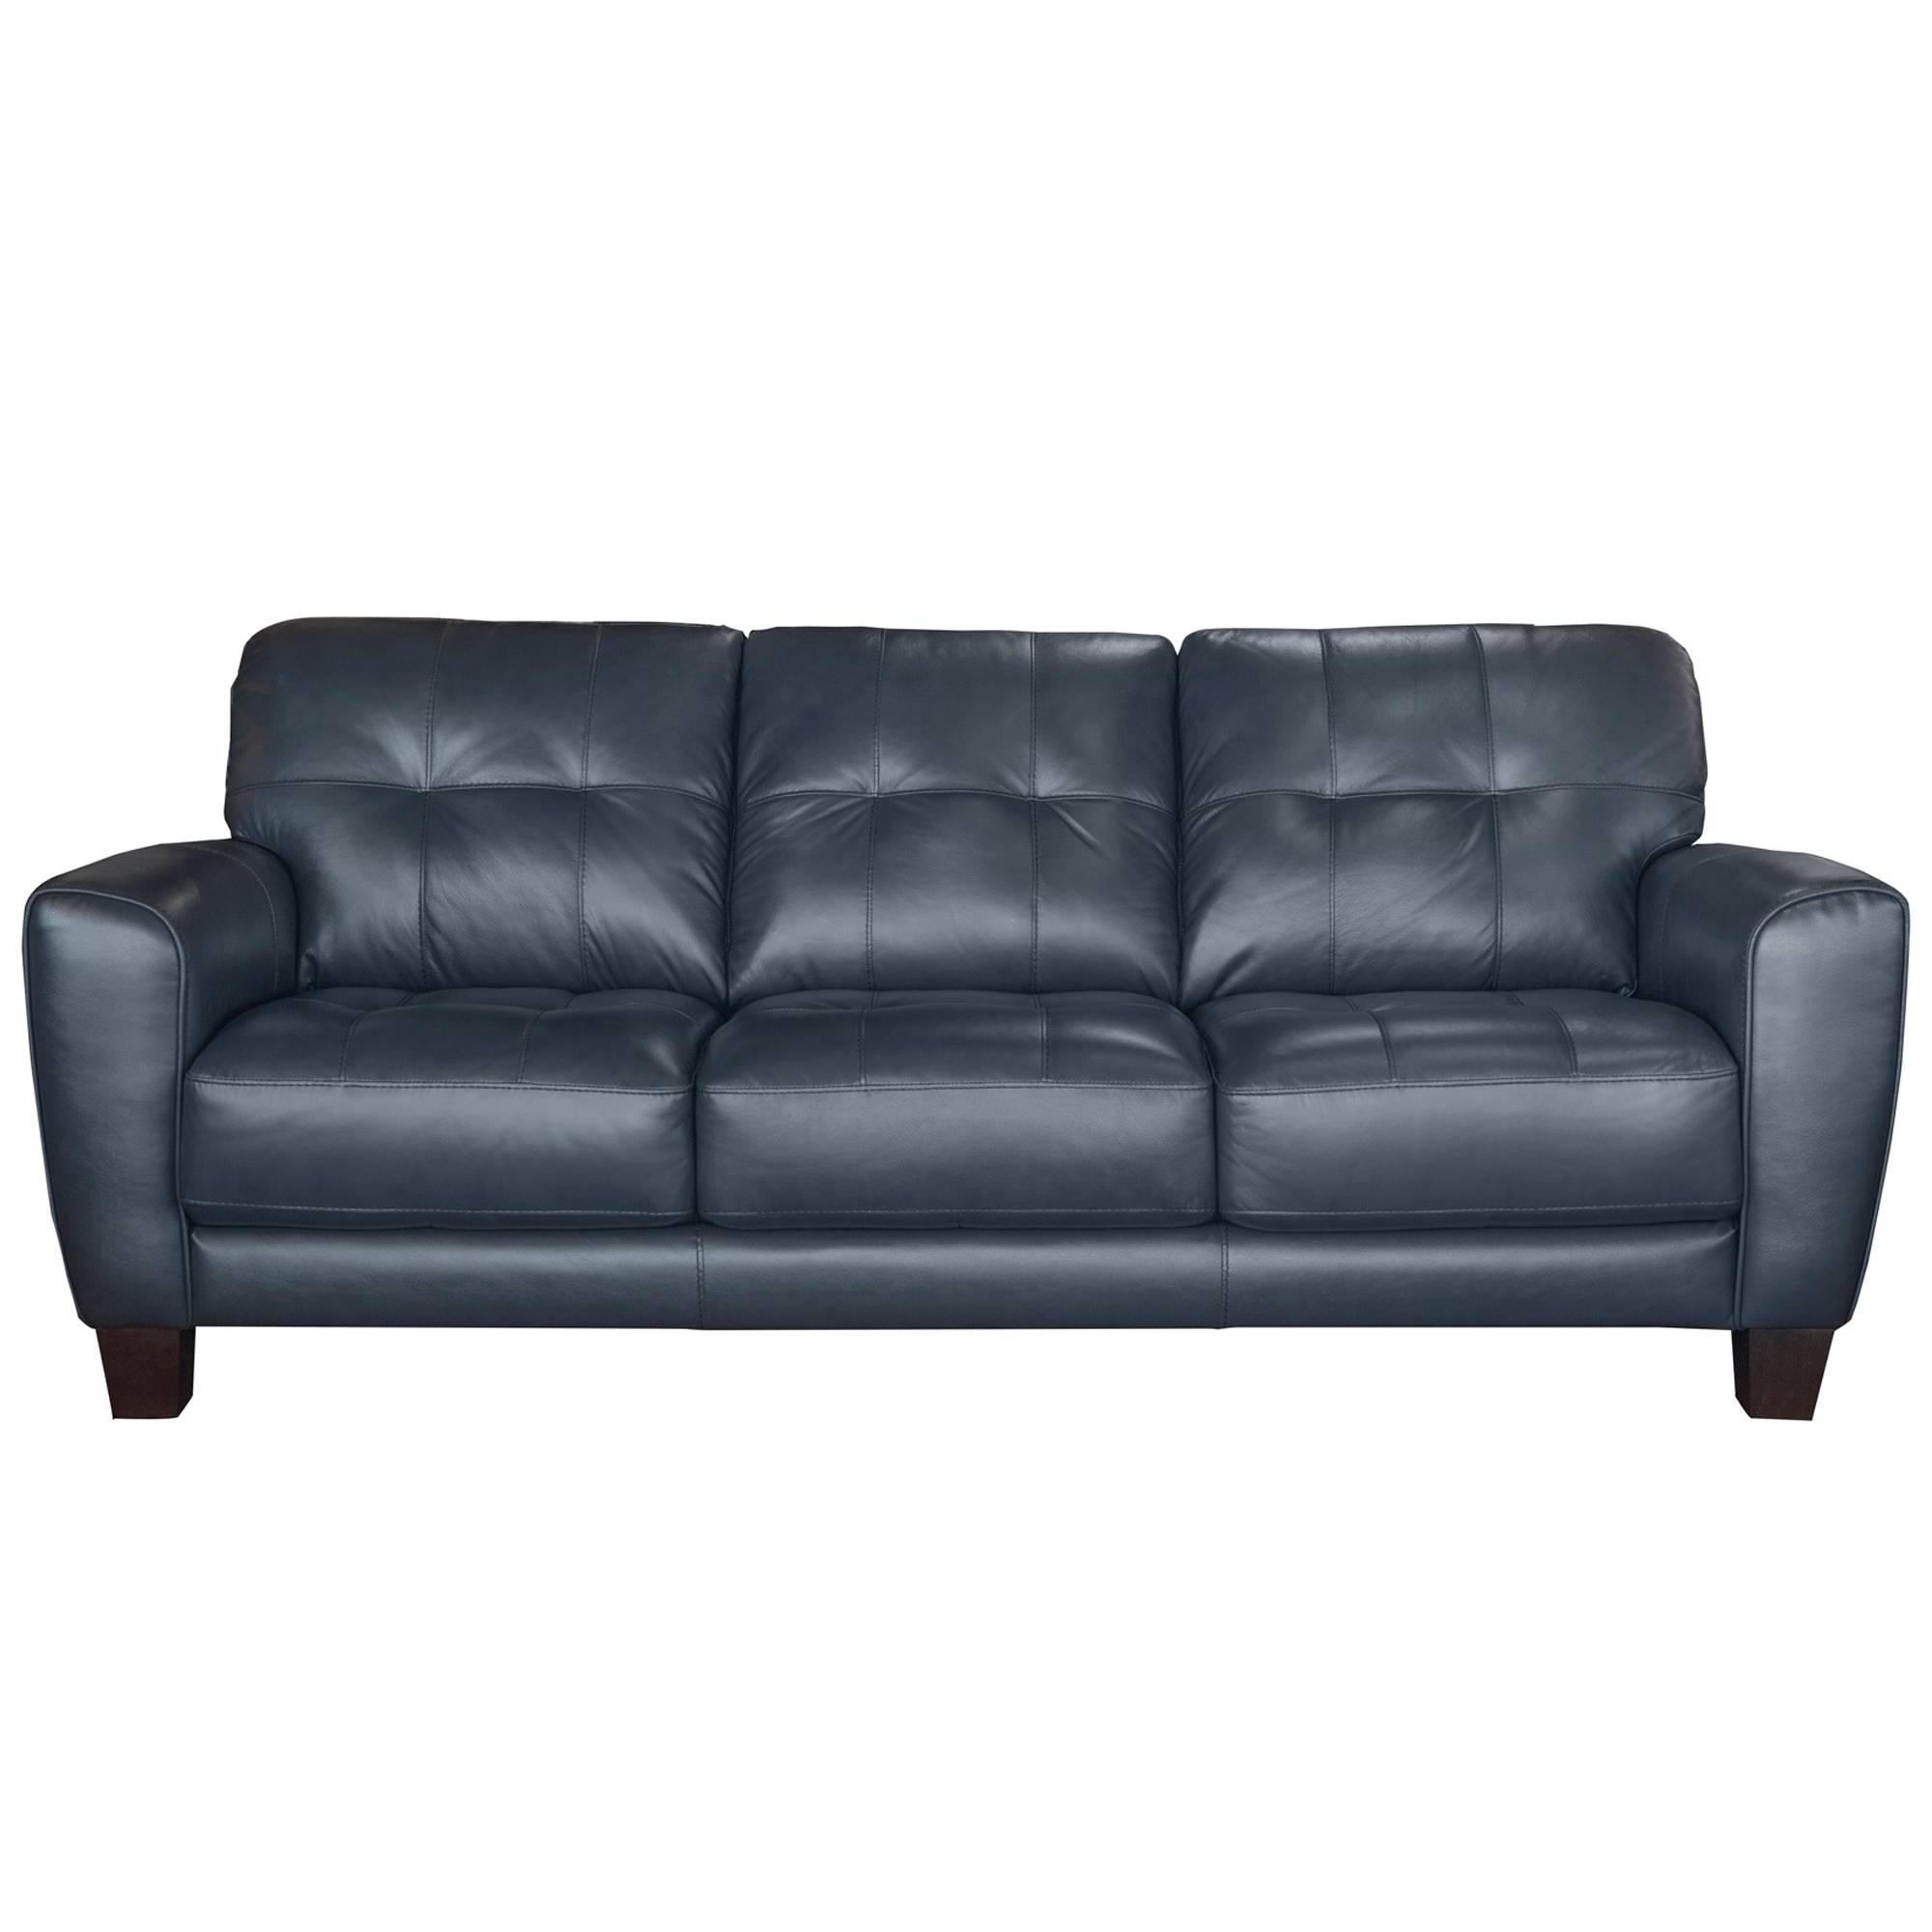 30 Collection of Grey Sofa Chairs